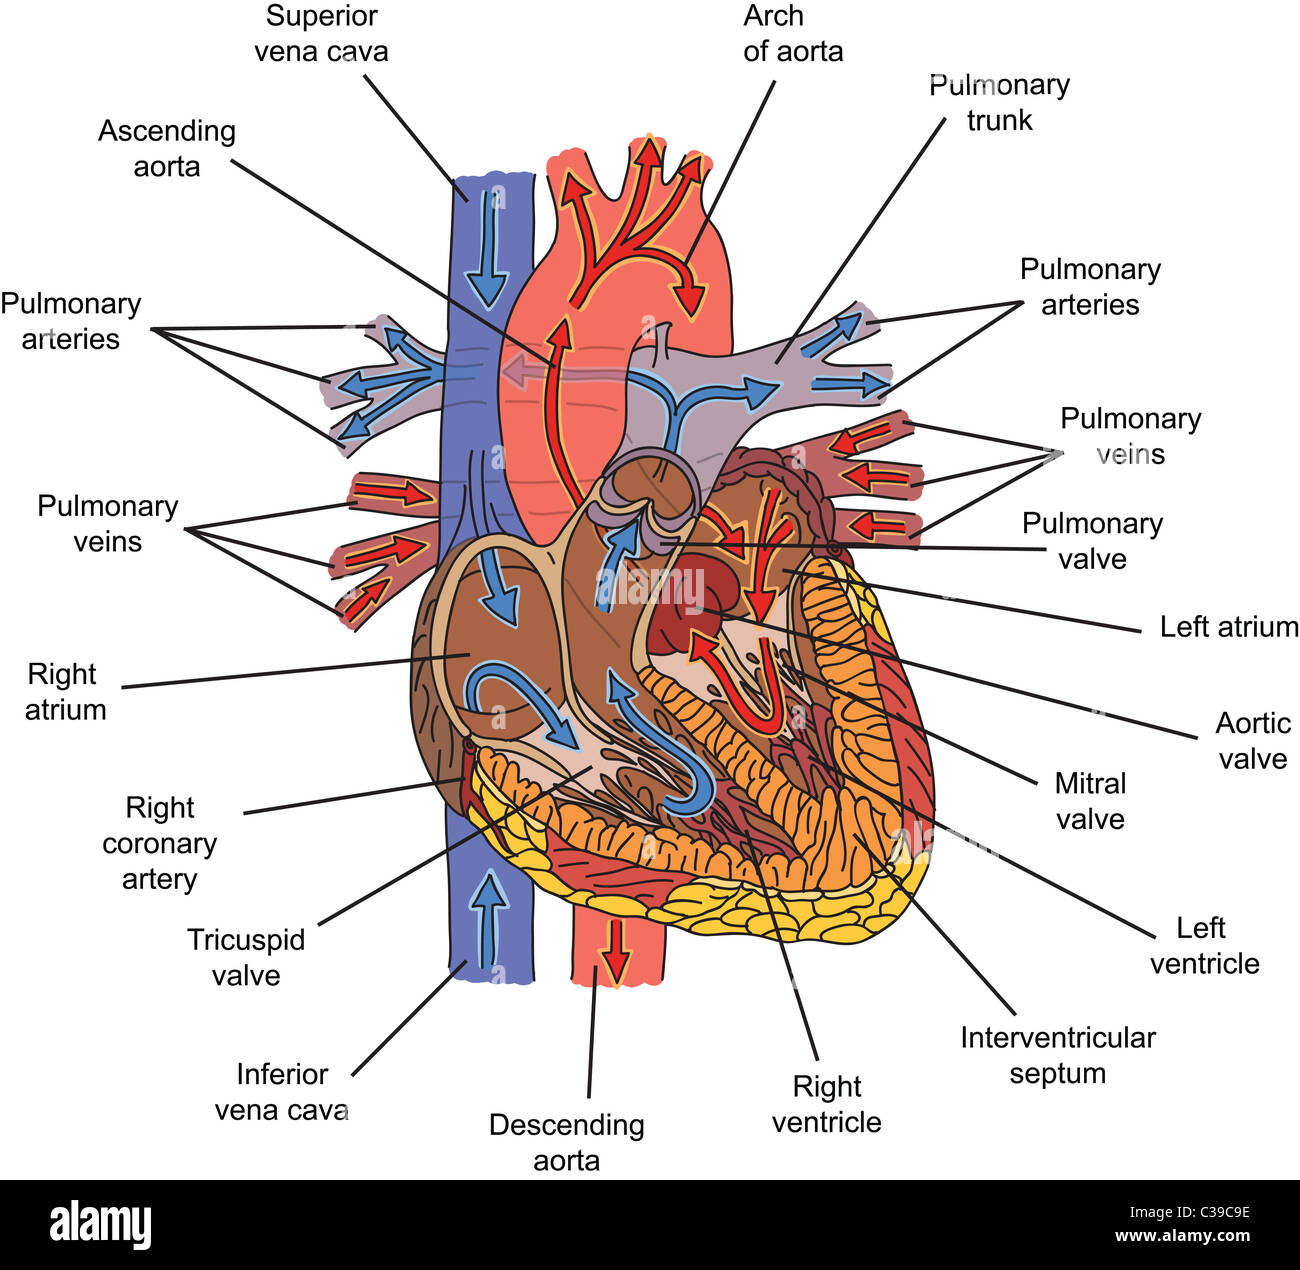 Structure Of Human Heart And Blood Flow Illustration Stock